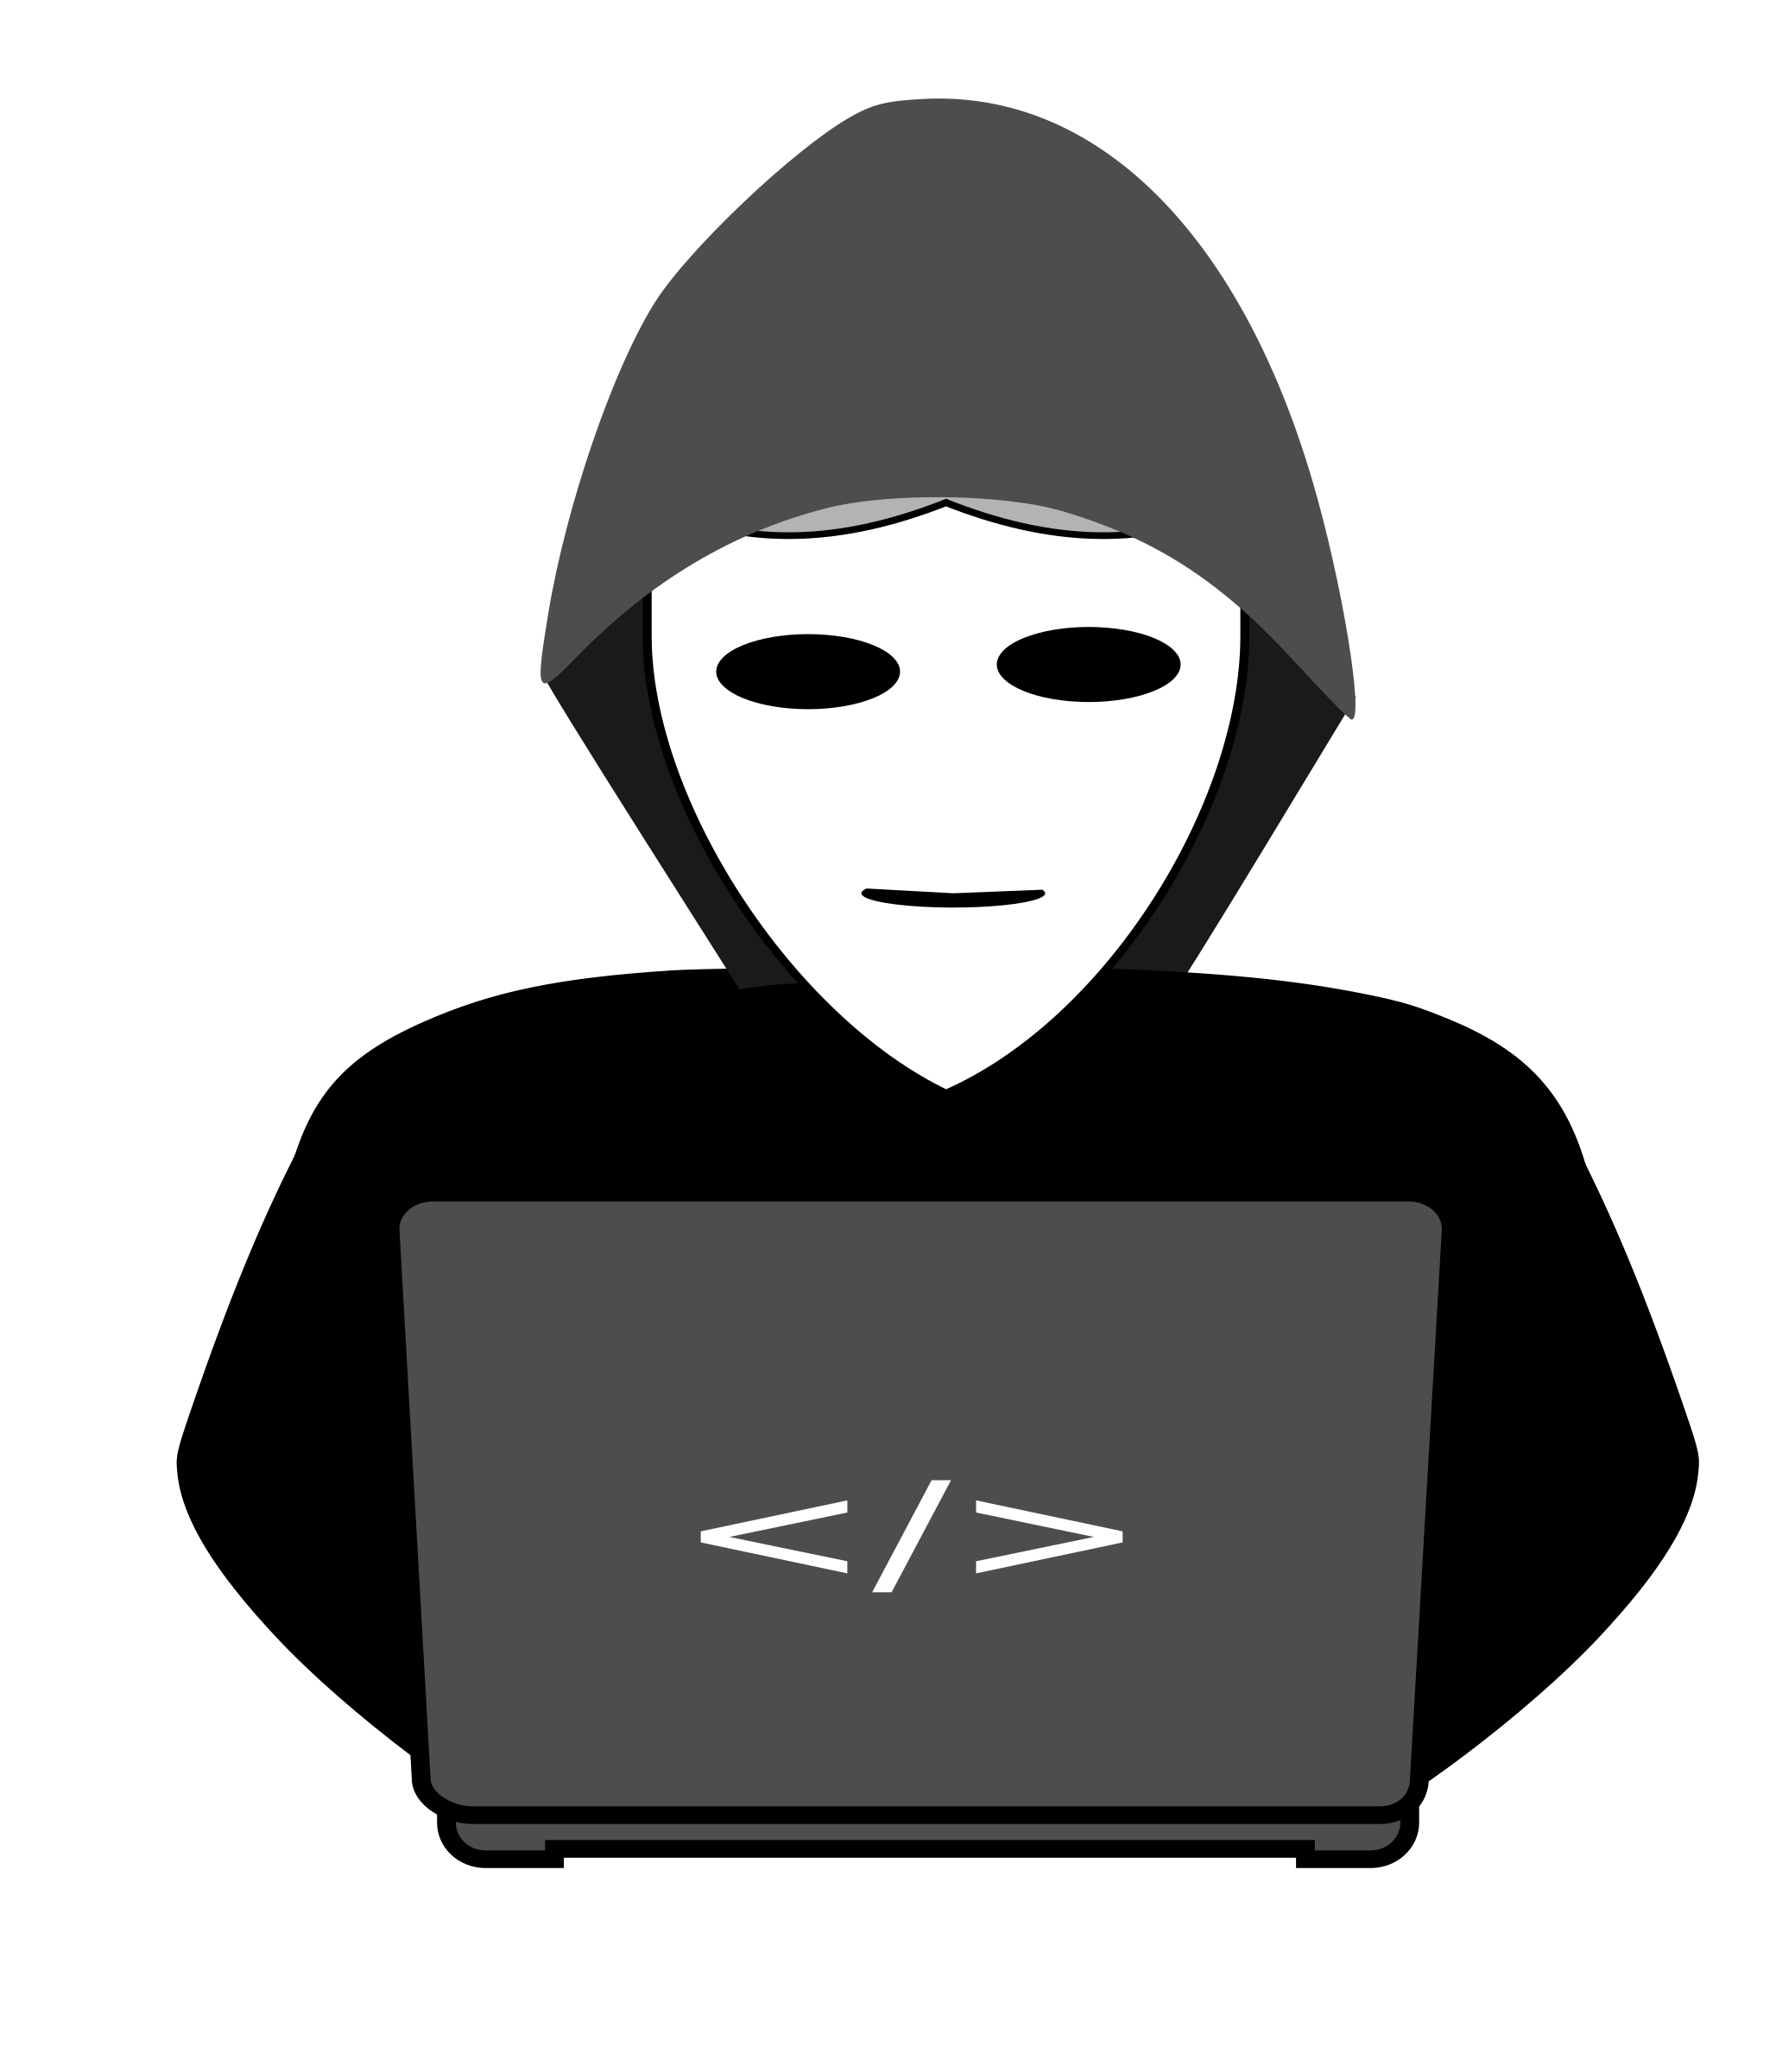 Evidence clipart spy gadget. Anonymous hacker behind pc